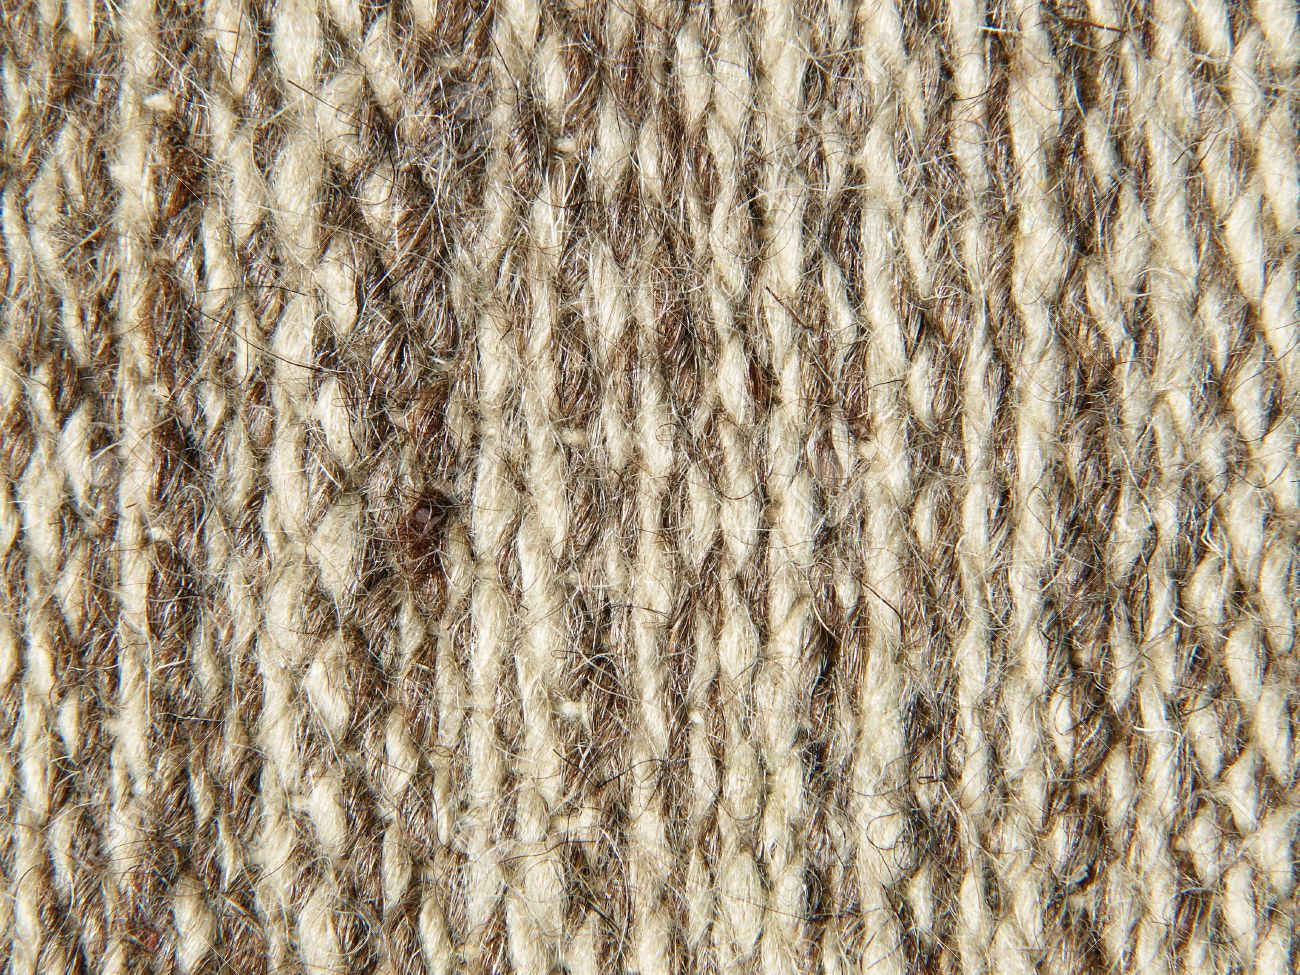 Rough Knit Camel Wool Fabric Texture Pattern As Background. Stock ...